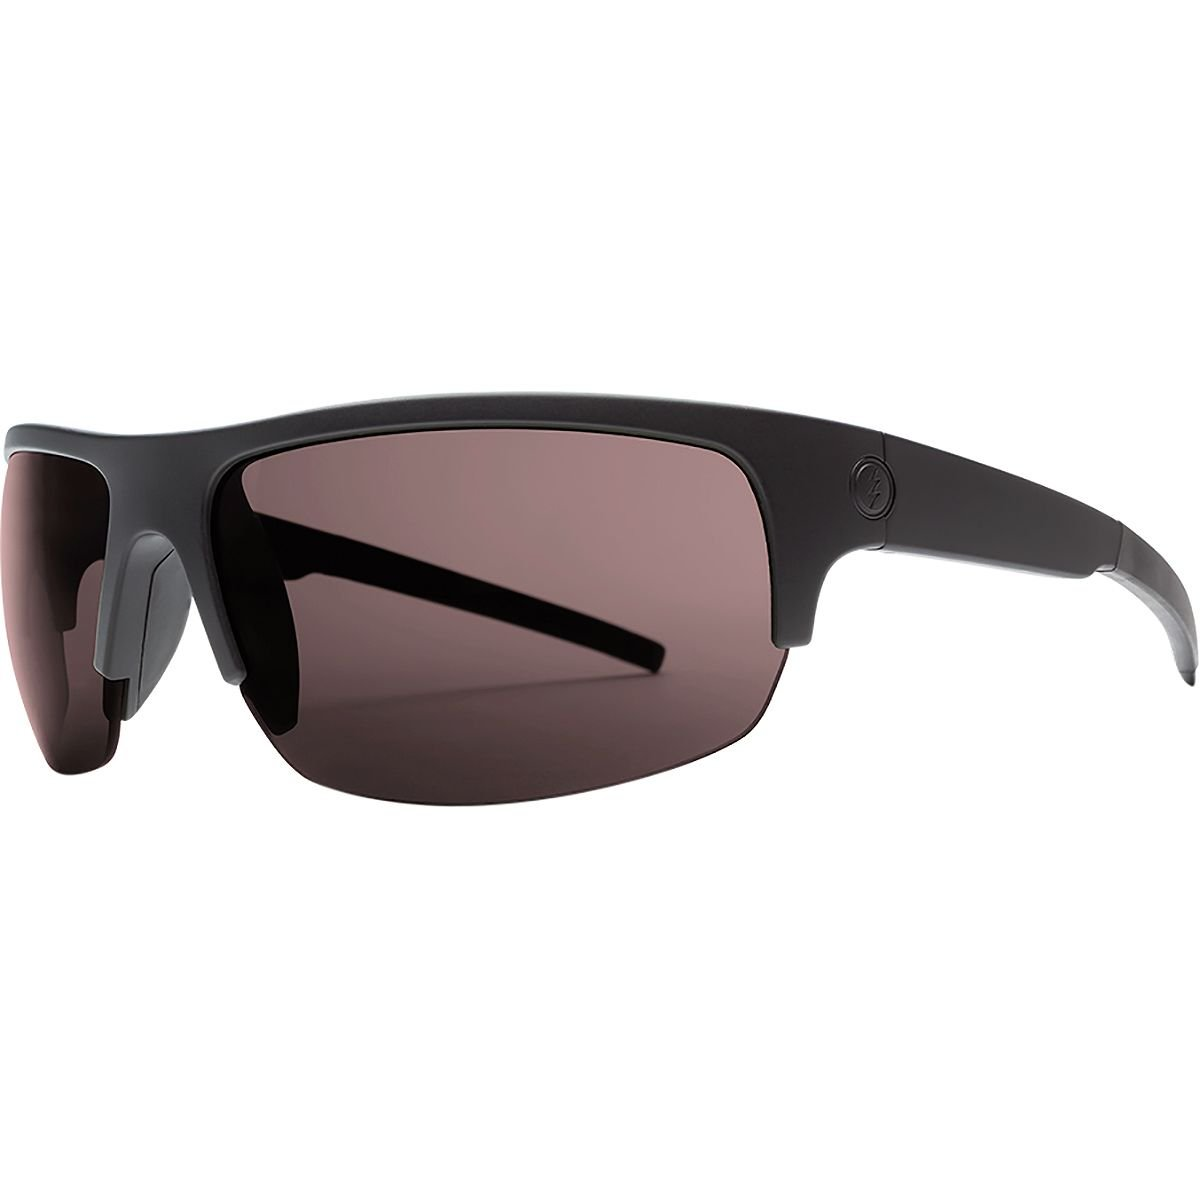 Electric Visual Tech One Pro Matte Black/OHM+Polarized Rose Sunglasses by Electric